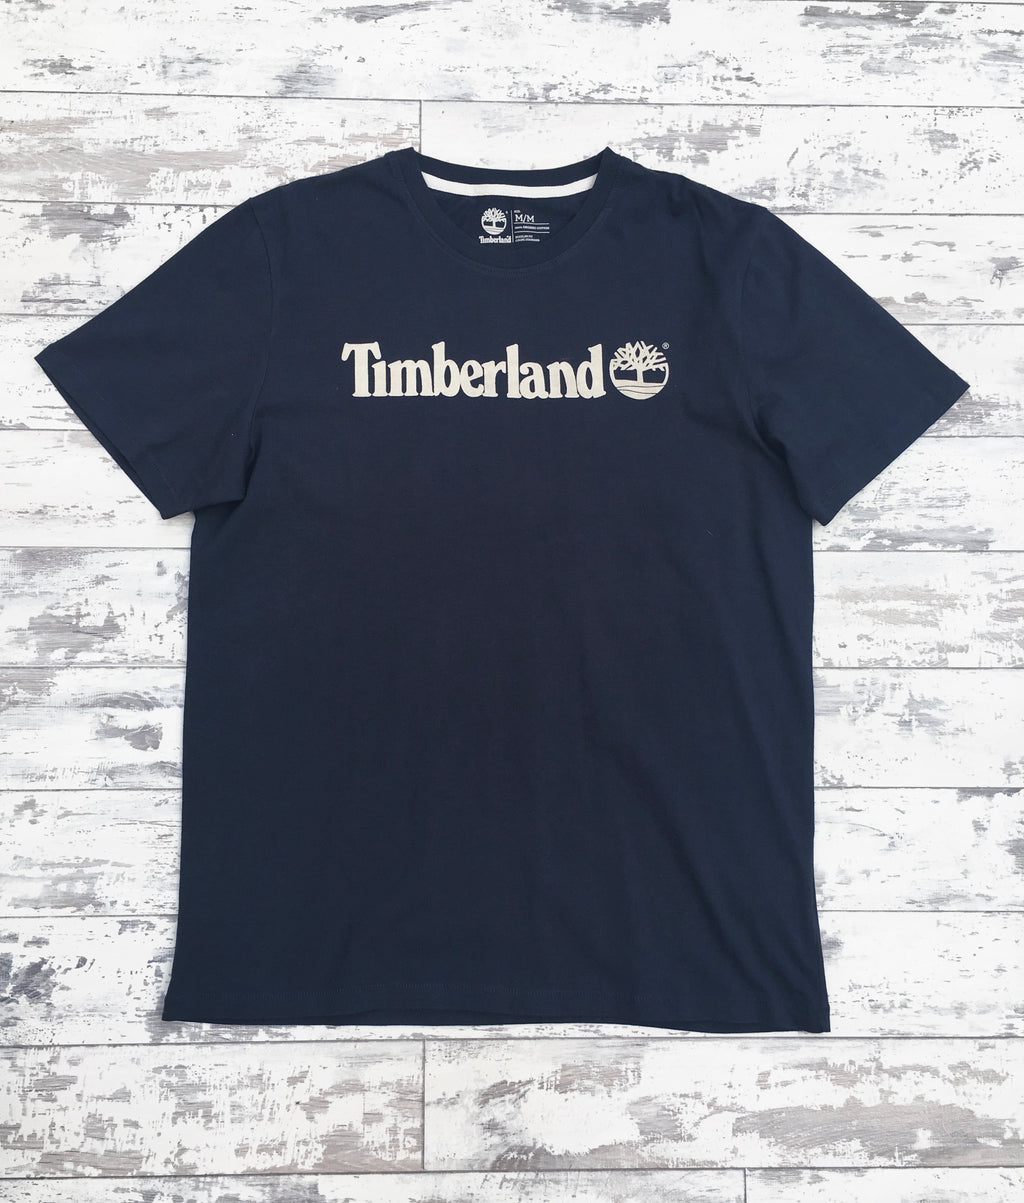 Navy Timberland round-neck tee shirt / Tshirt, with large, cream, printed logo across the chest